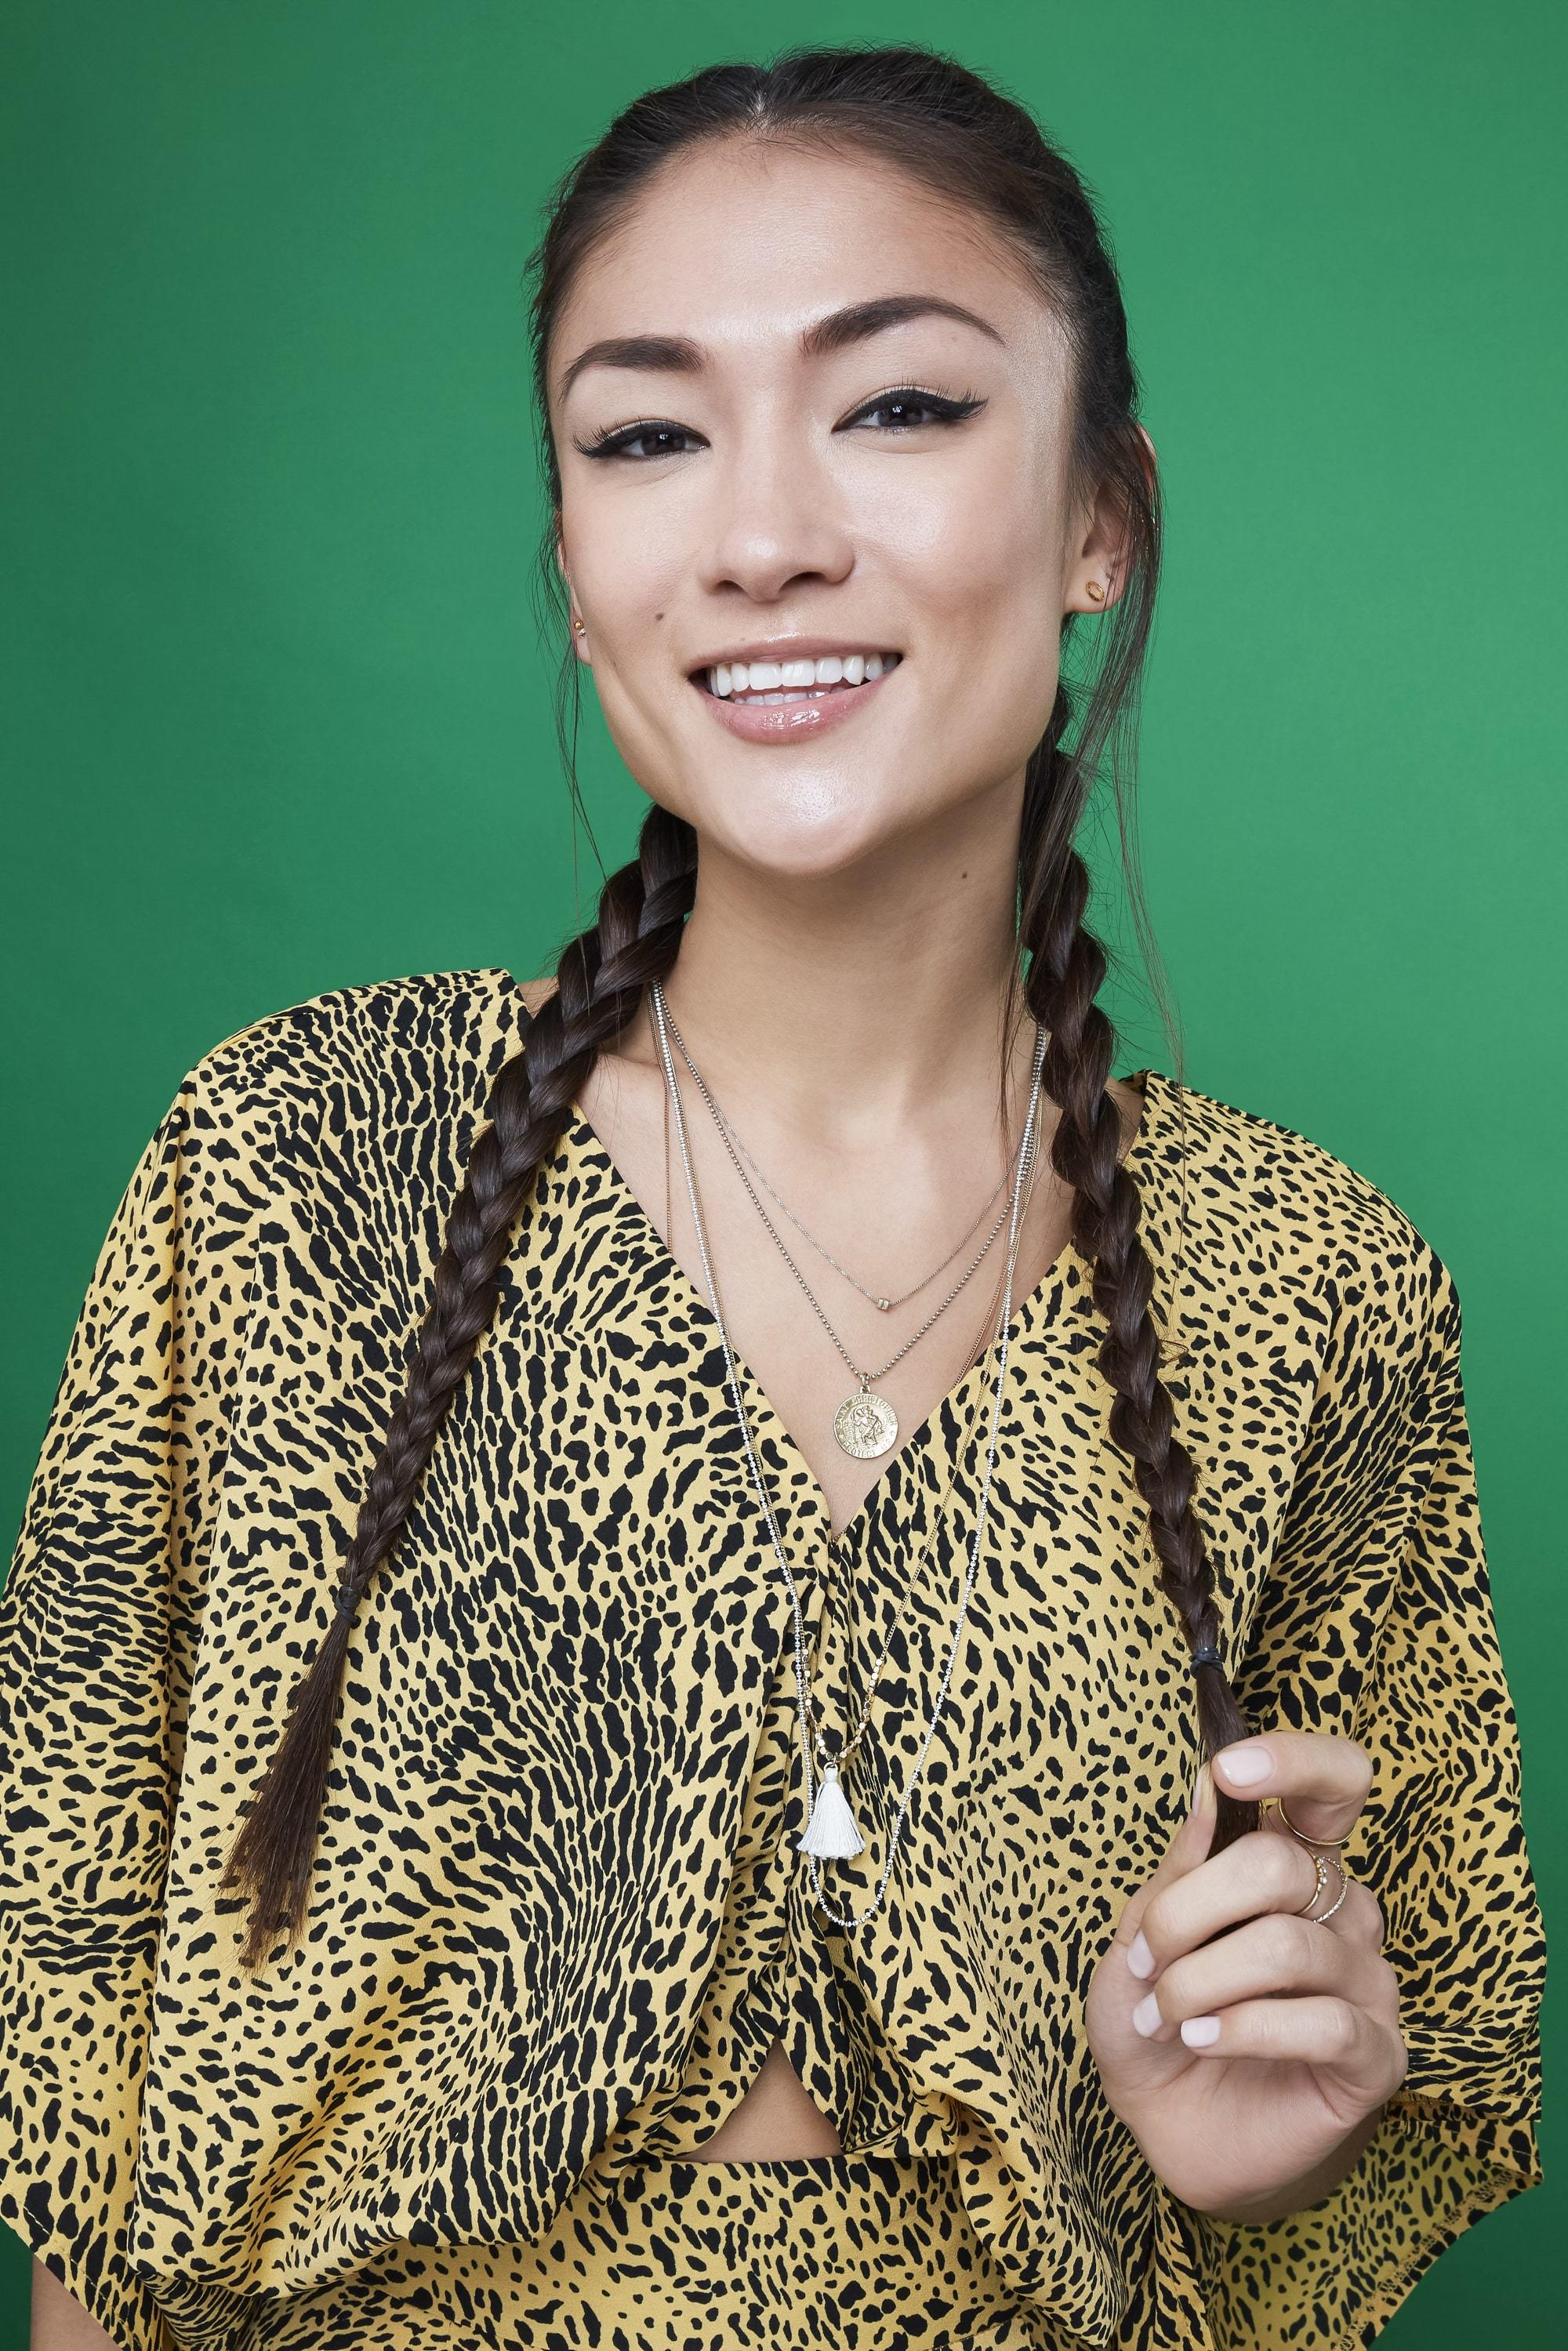 Braids for long hair: Woman with very long dark brown hair in boxer braids wearing a pattern top against a green backdrop.